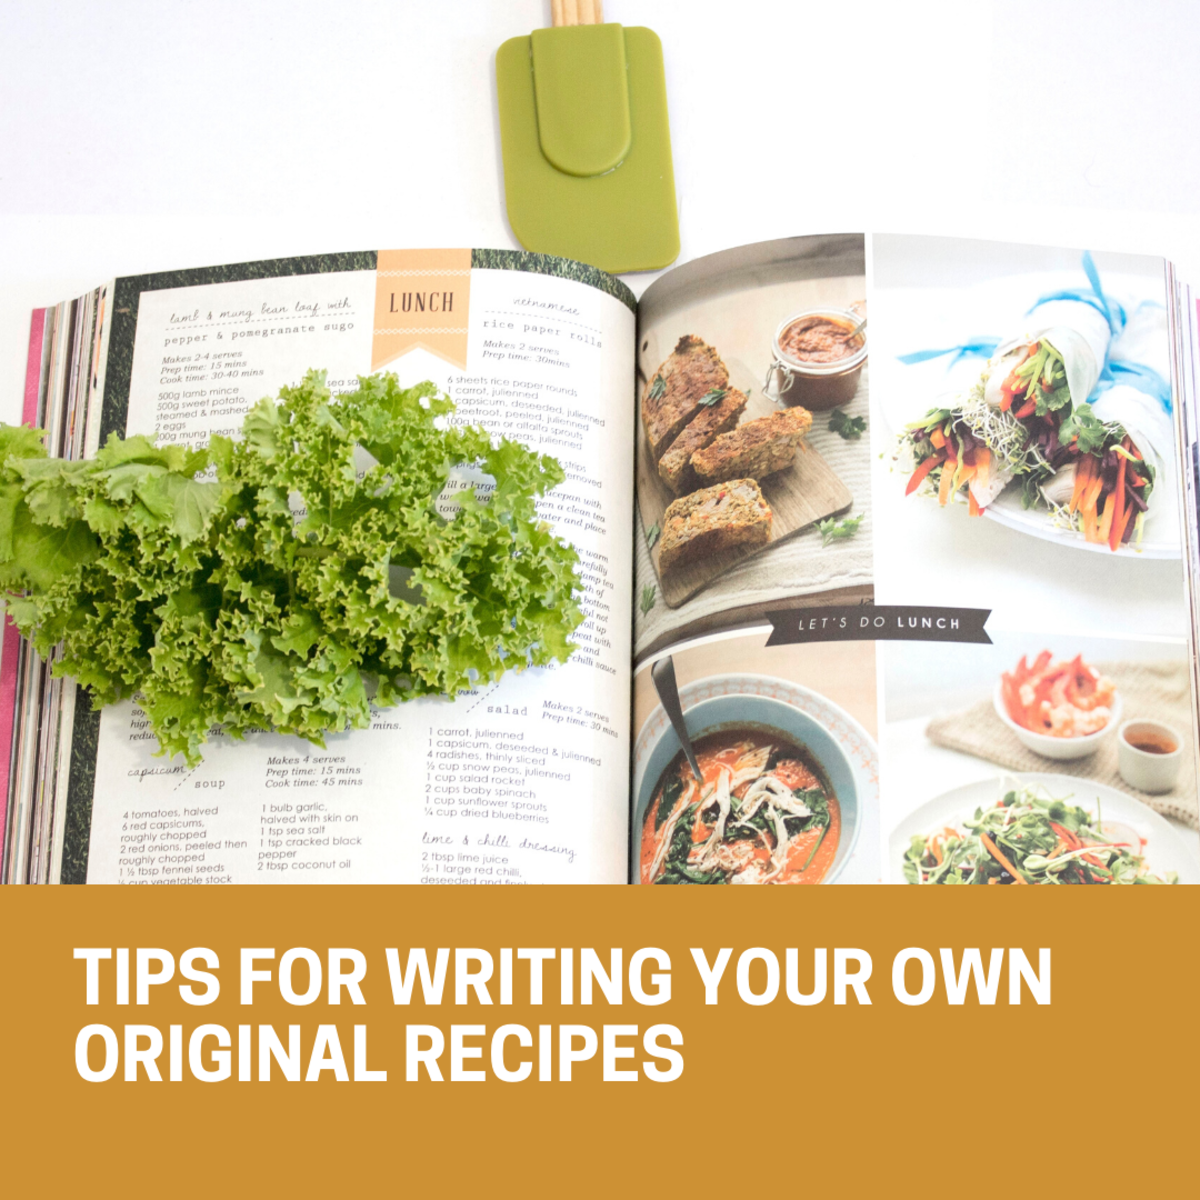 10 Tips for Writing Your Own Original Recipes